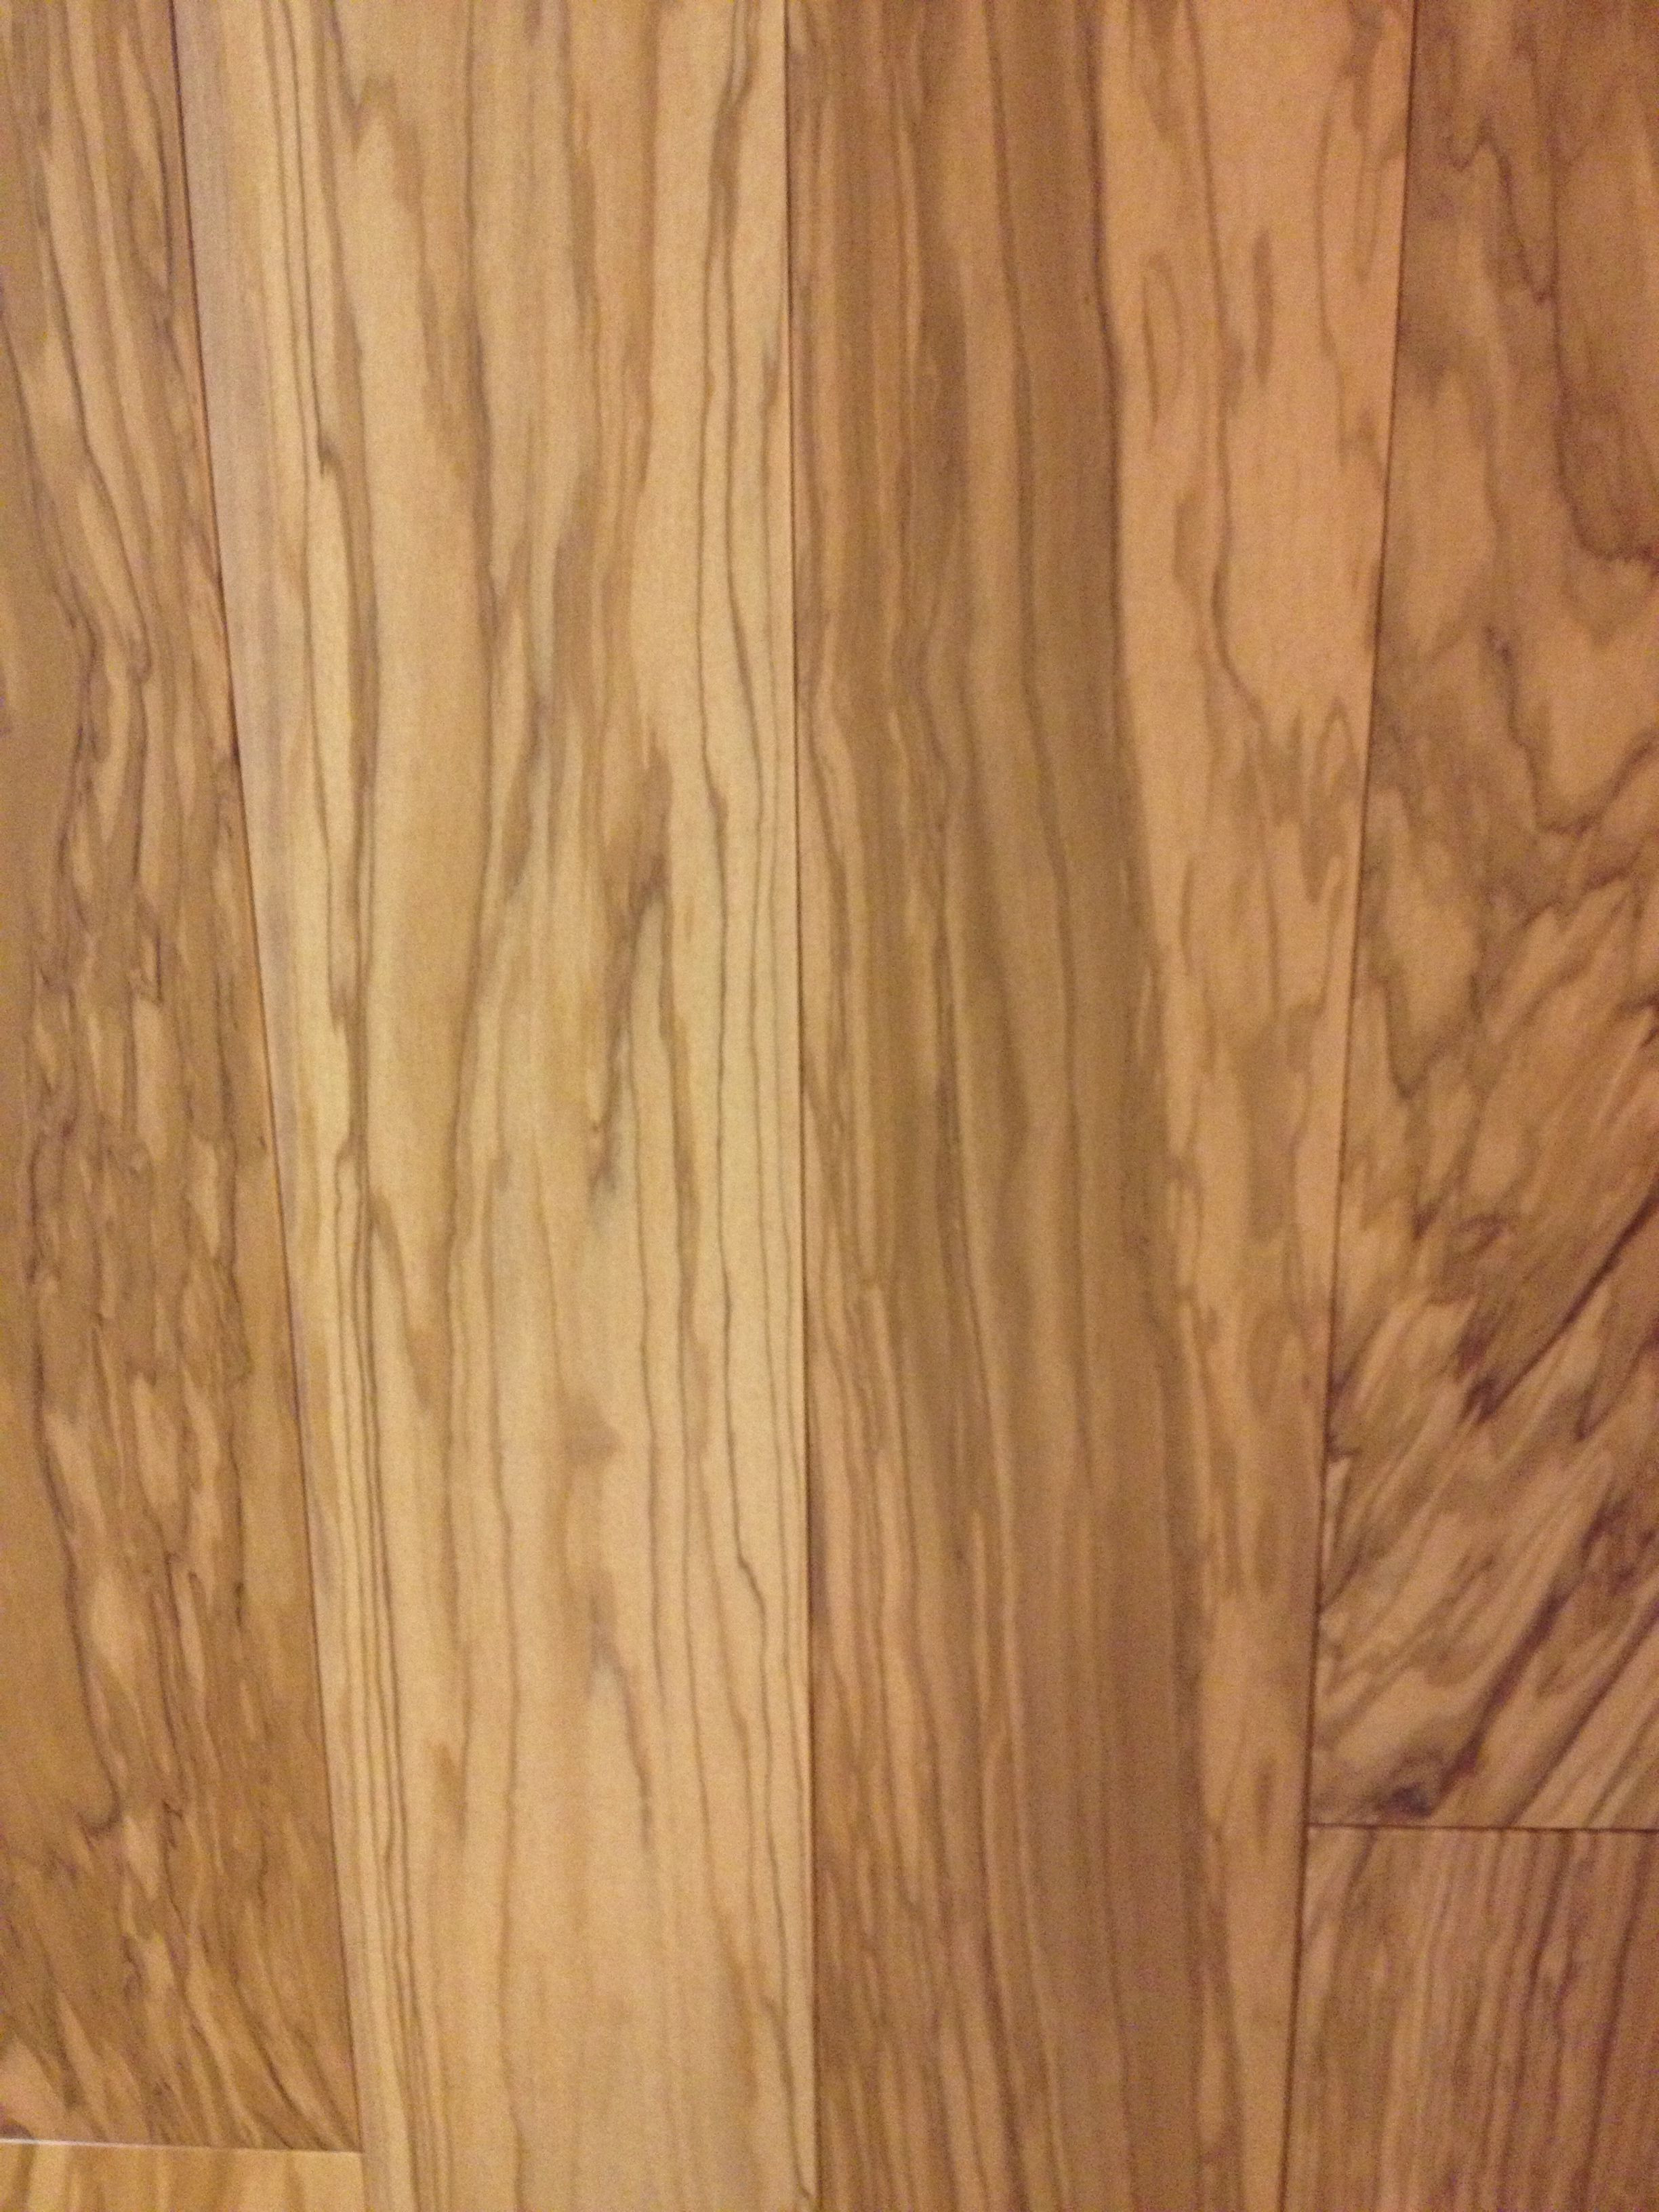 hardwood floor refinishing richmond of tuscany olive wood floor there is nothing quite like olive wood for inside tuscany olive wood floor there is nothing quite like olive wood for turning your home